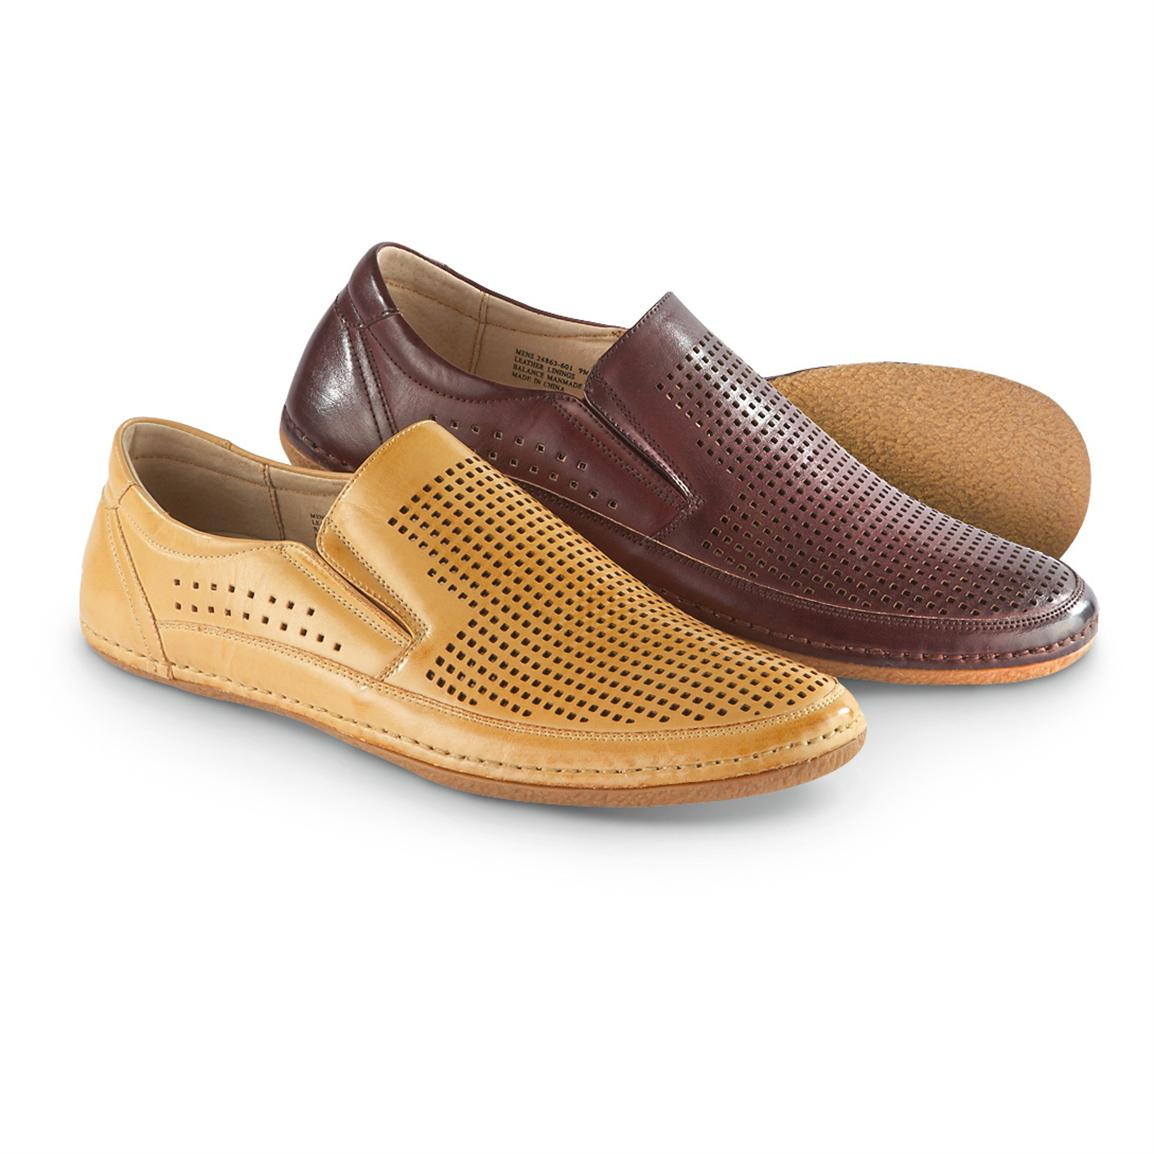 Free shipping and returns on All Men's Stacy Adams Shoes at trueffil983.gq